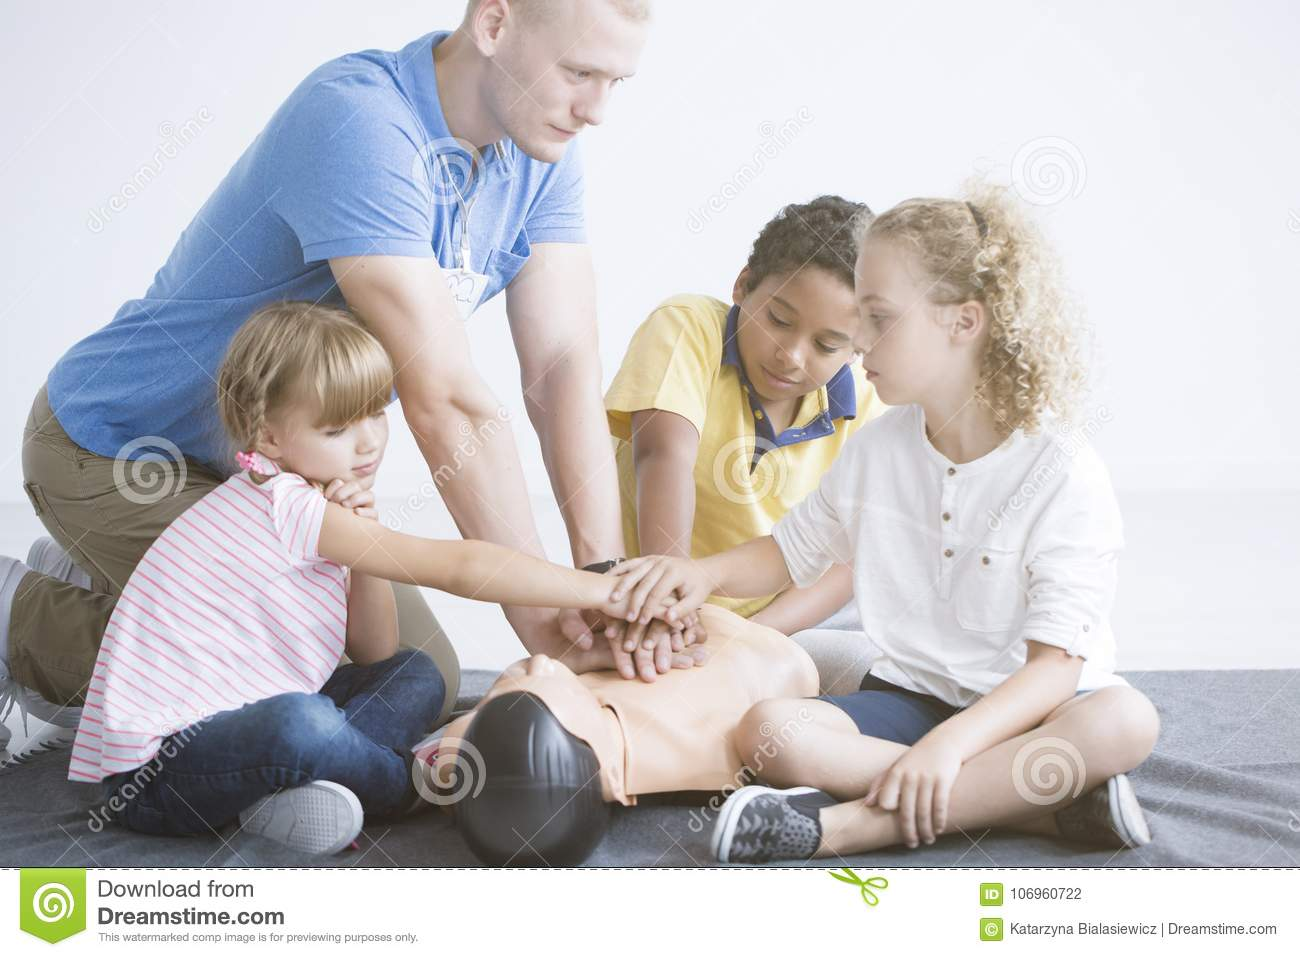 First aid training for children